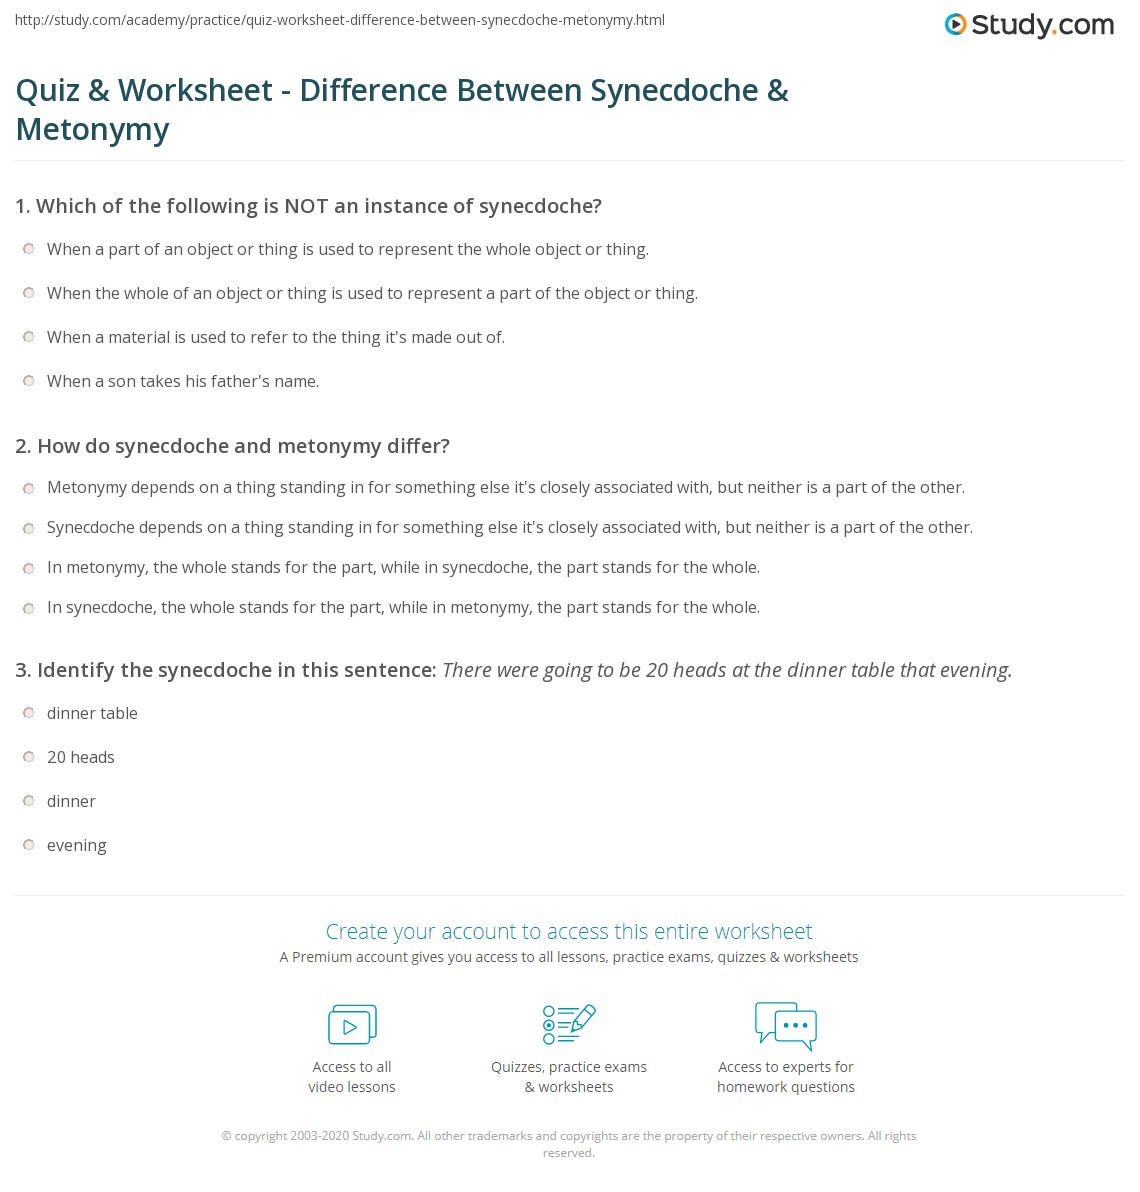 quiz worksheet difference between synecdoche metonymy. Black Bedroom Furniture Sets. Home Design Ideas